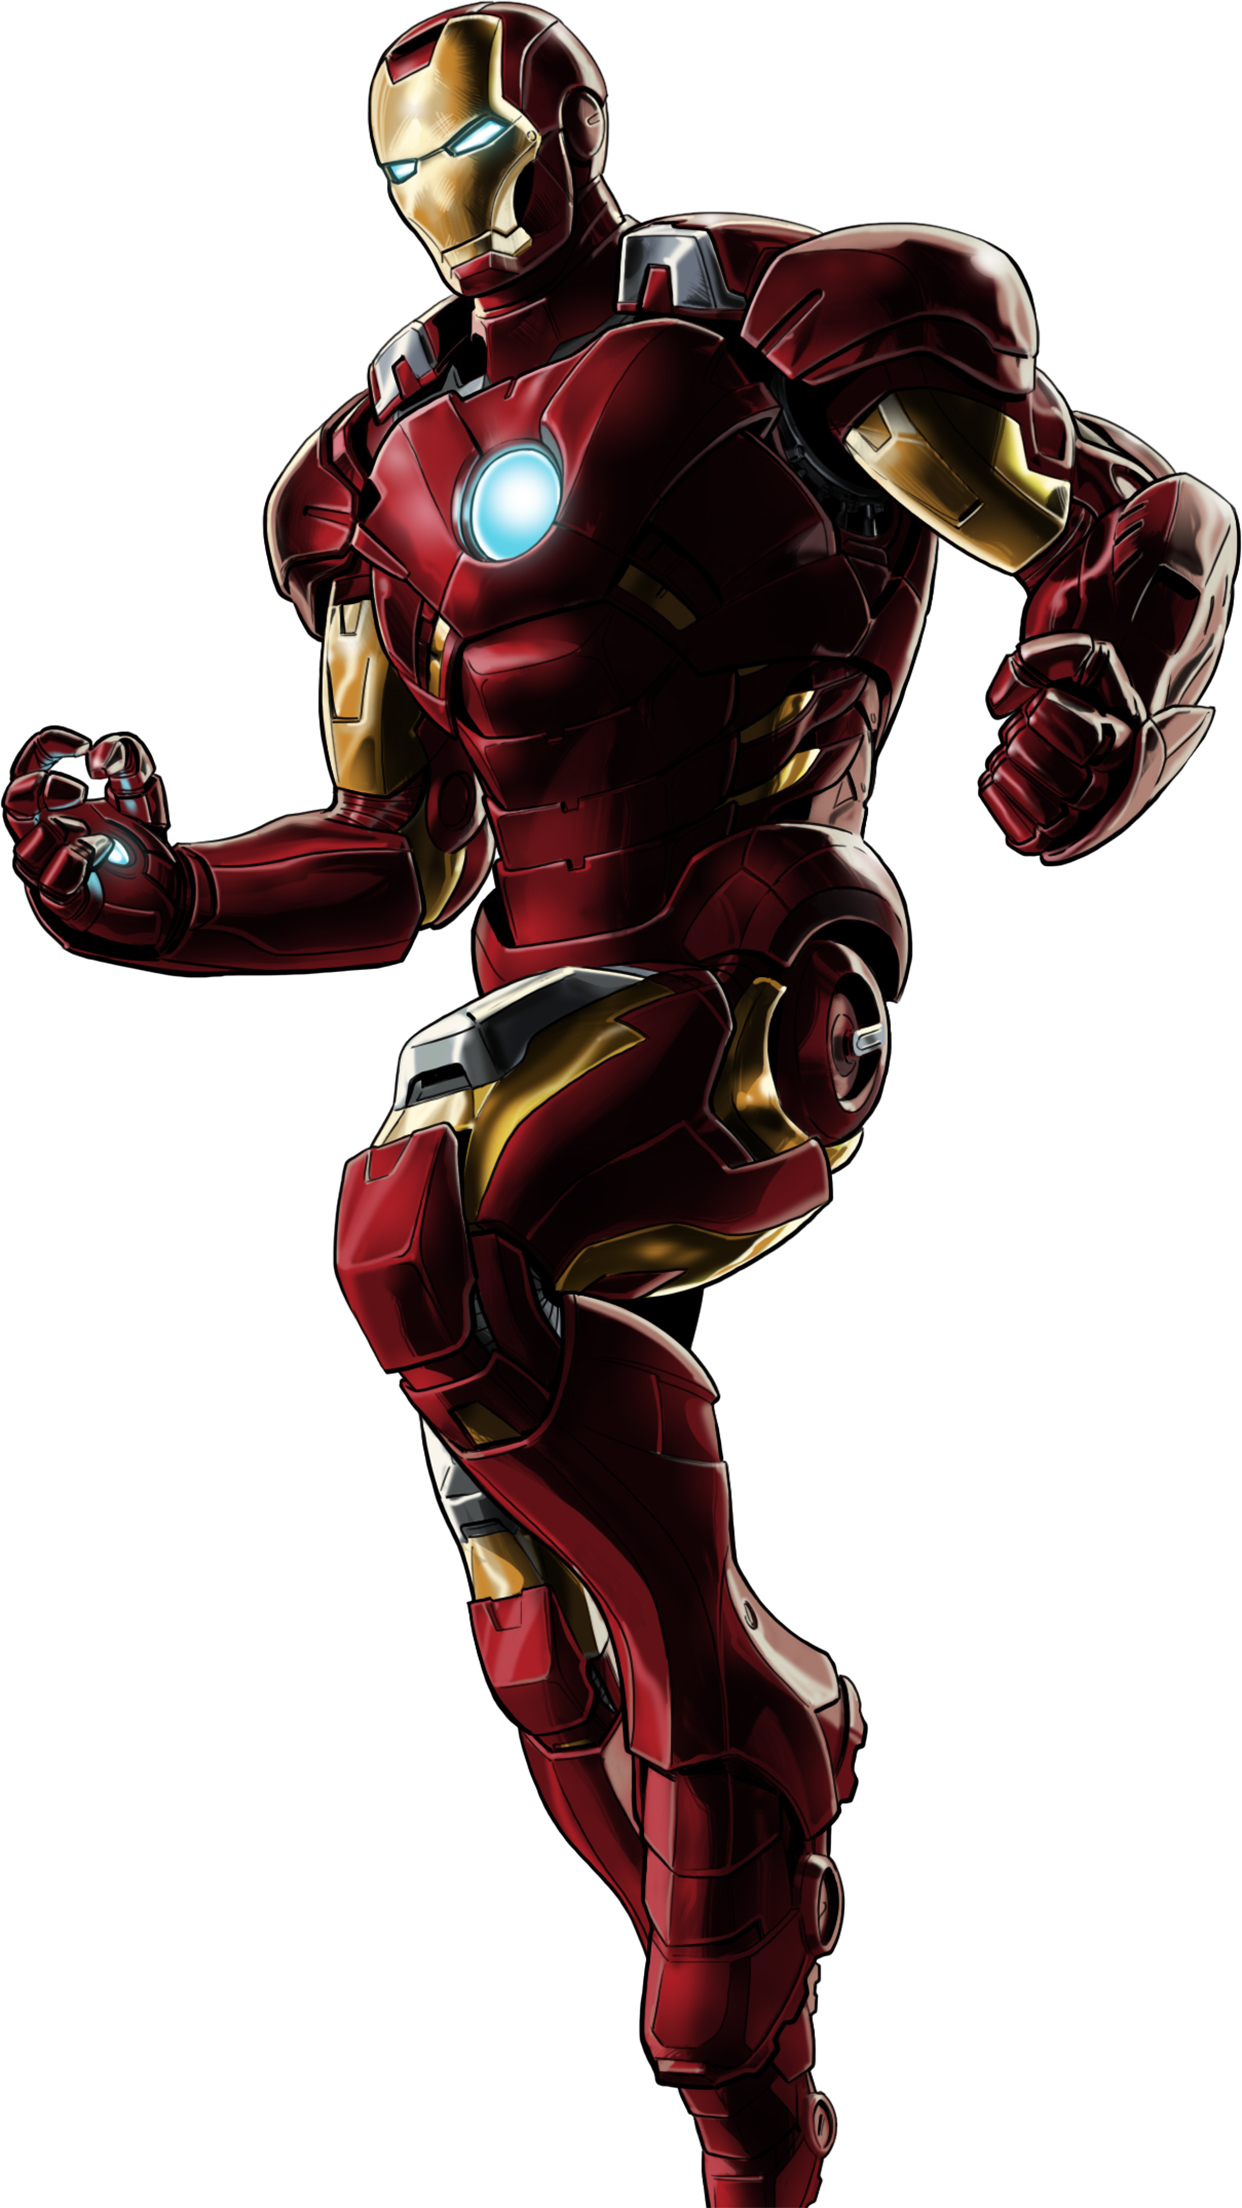 Iron Man Standing 3Wallpapers iPhone Parallax Les 3Wallpapers iPhone du jour (20/02/2017)